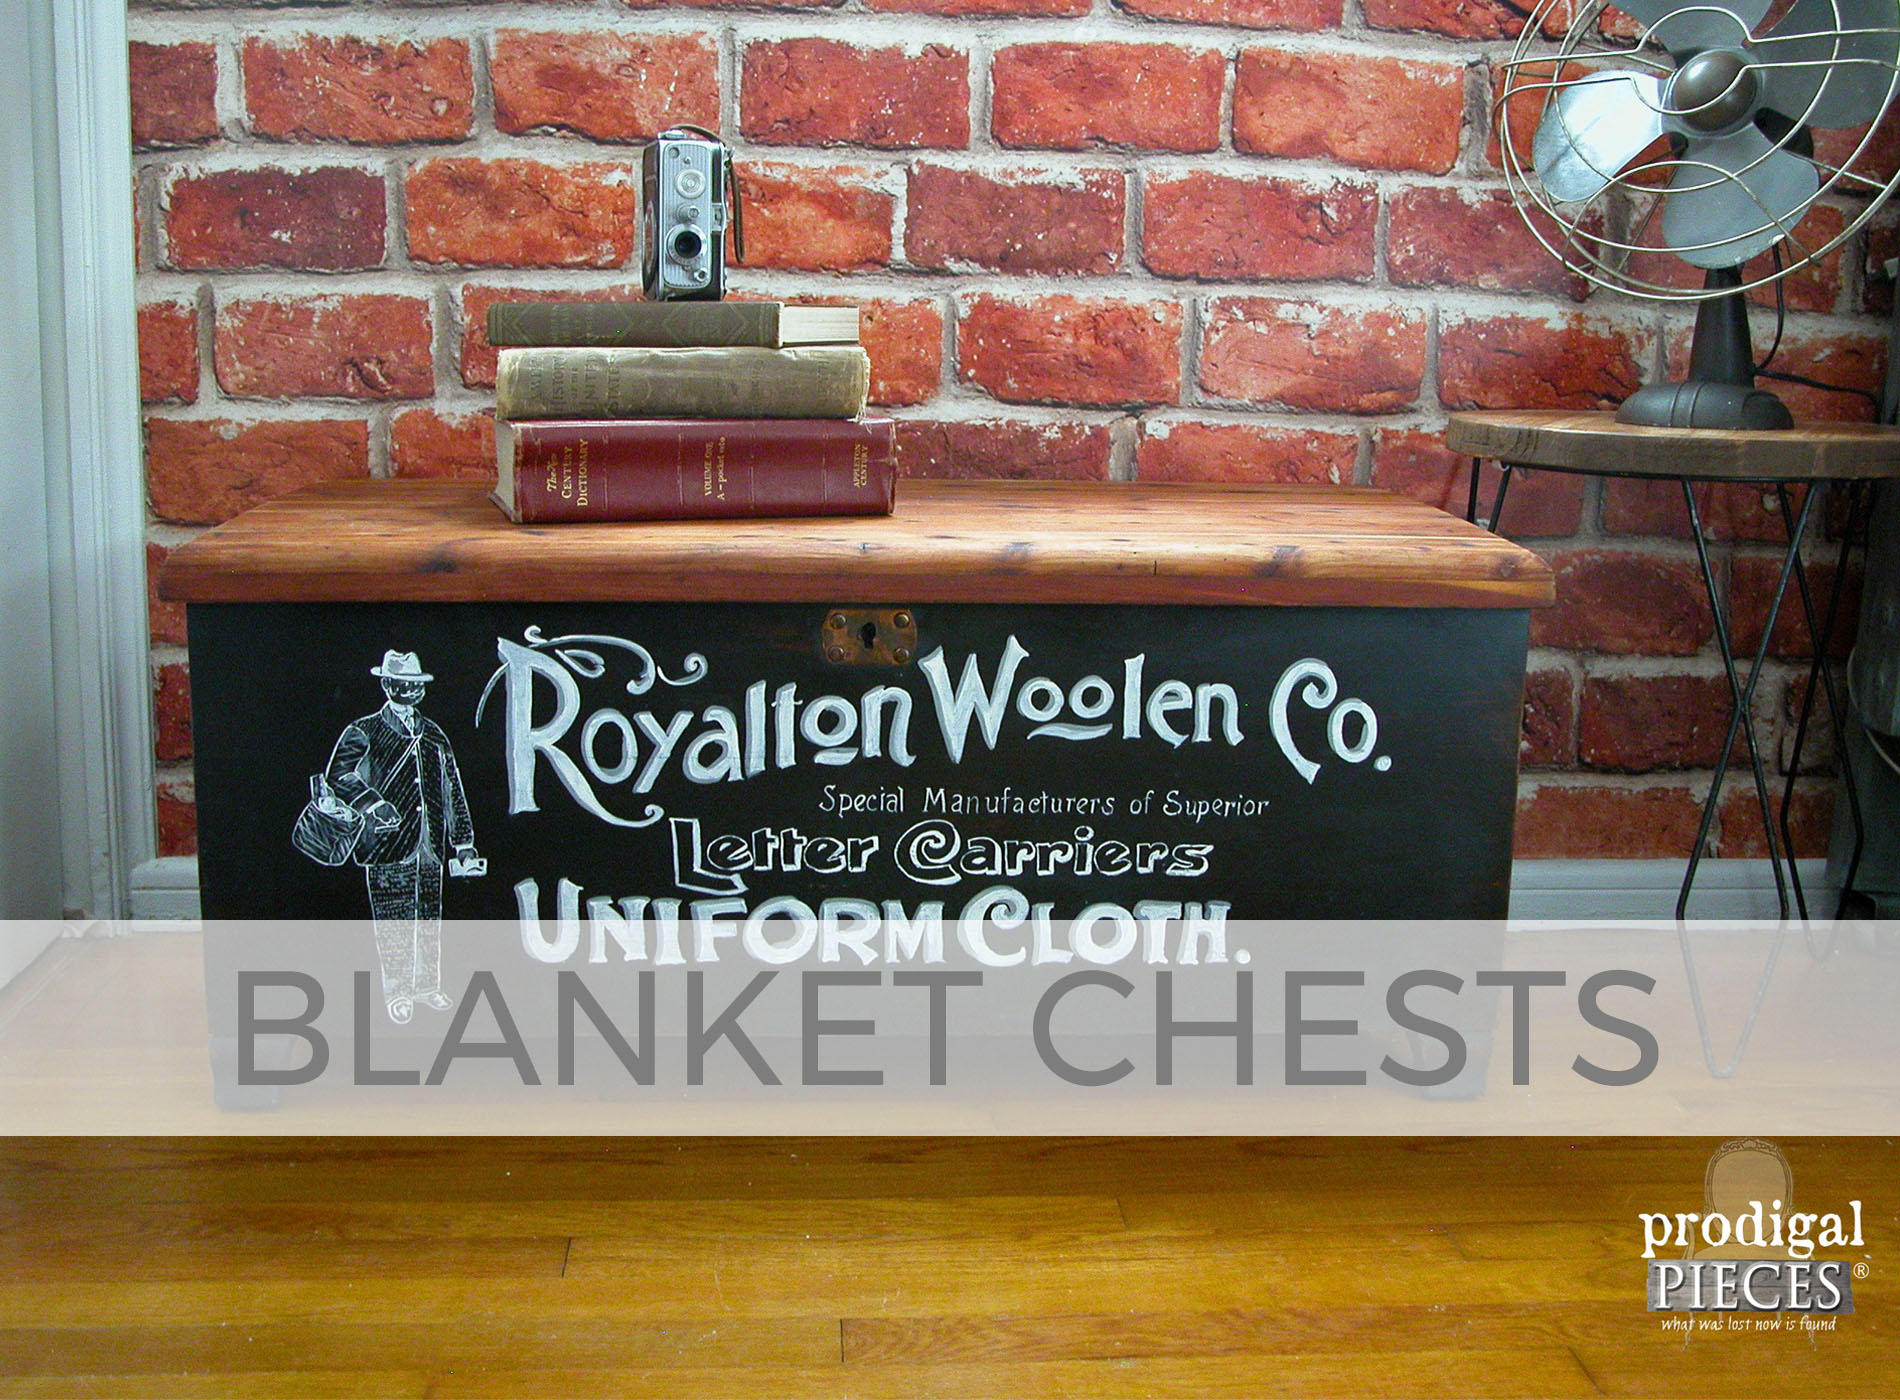 Blanket Chest Makeovers by Larissa of Prodigal Pieces | prodigalpieces.com